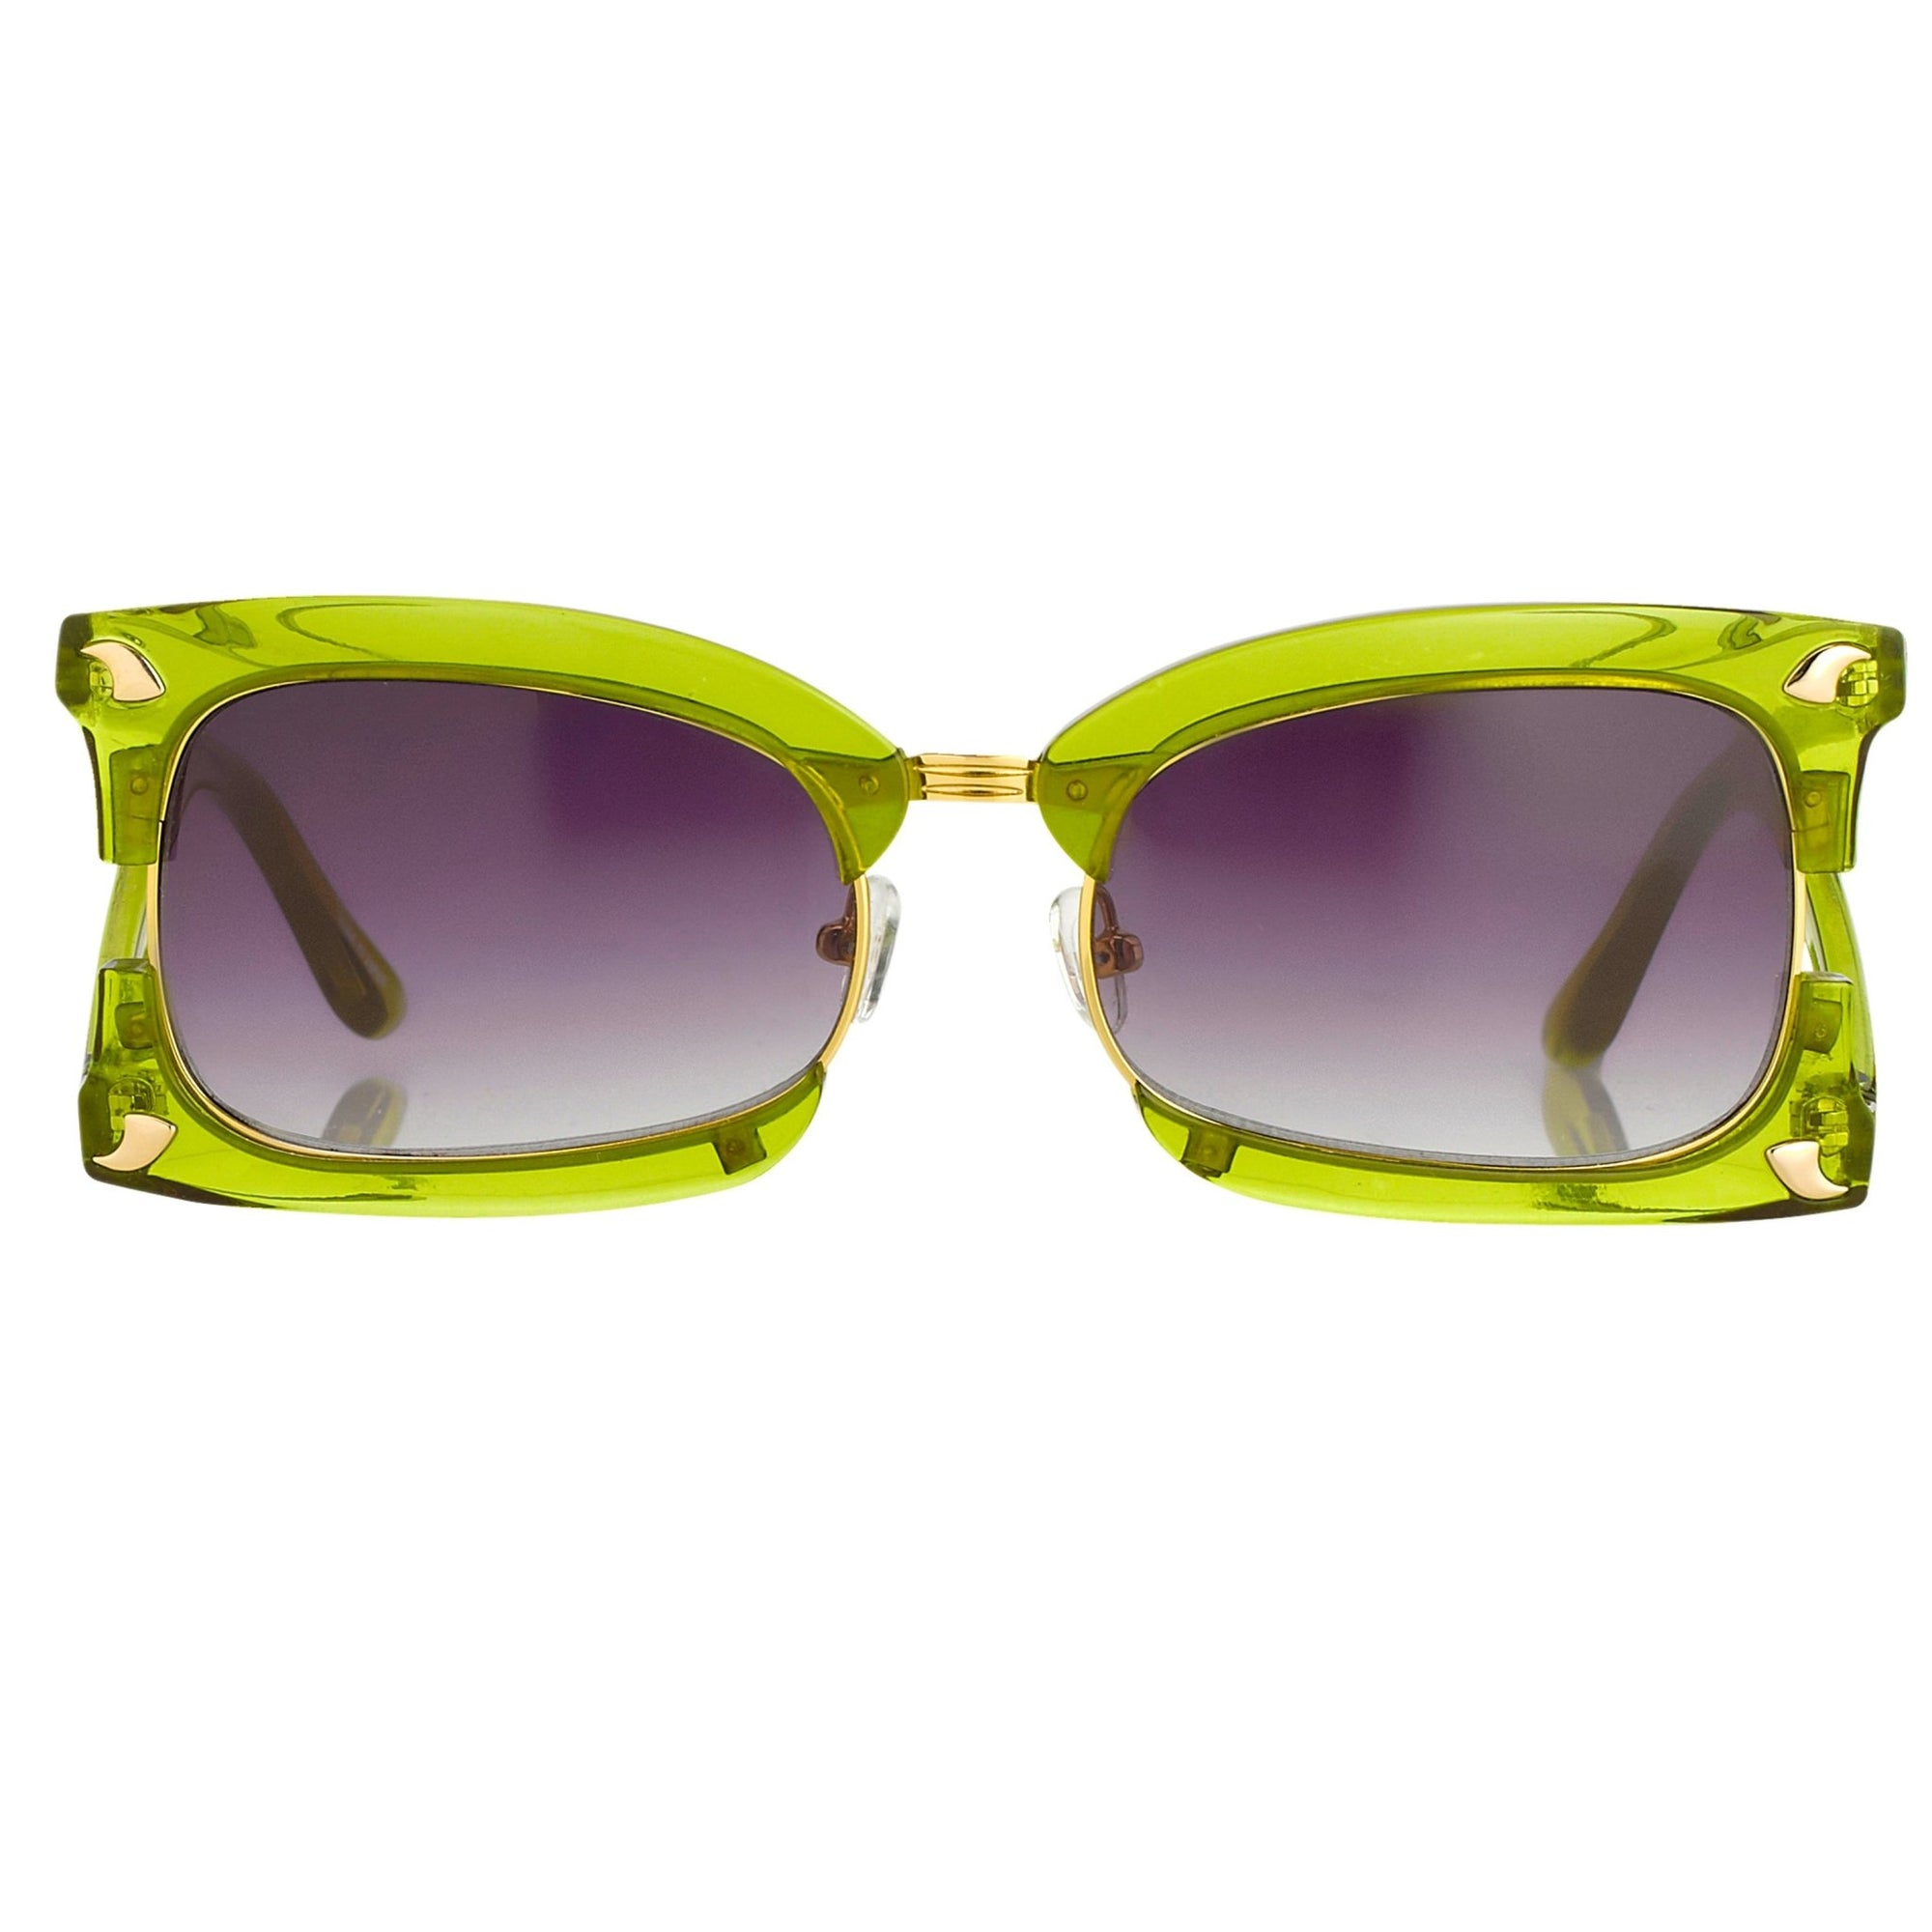 Prabal Gurung Sunglasses Rectangular Apple Green With Purple Category 3 Graduated Lenses PG2C4SUN - Watches & Crystals